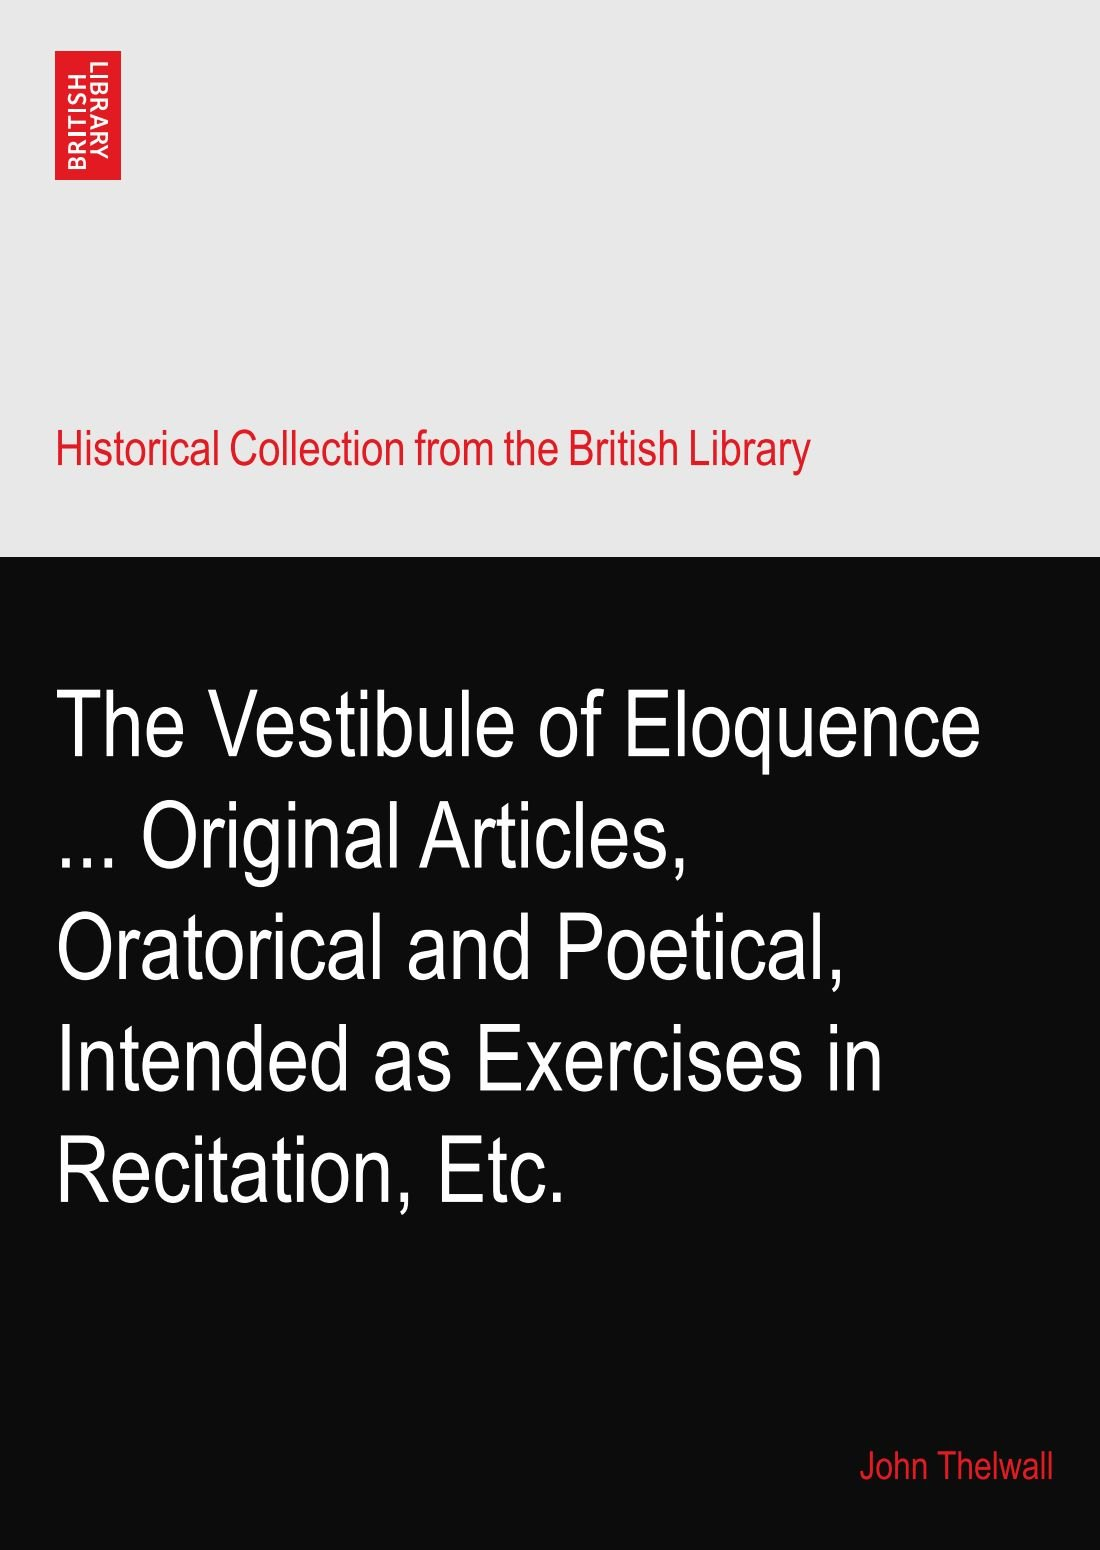 Download The Vestibule of Eloquence ... Original Articles, Oratorical and Poetical, Intended as Exercises in Recitation, Etc. pdf